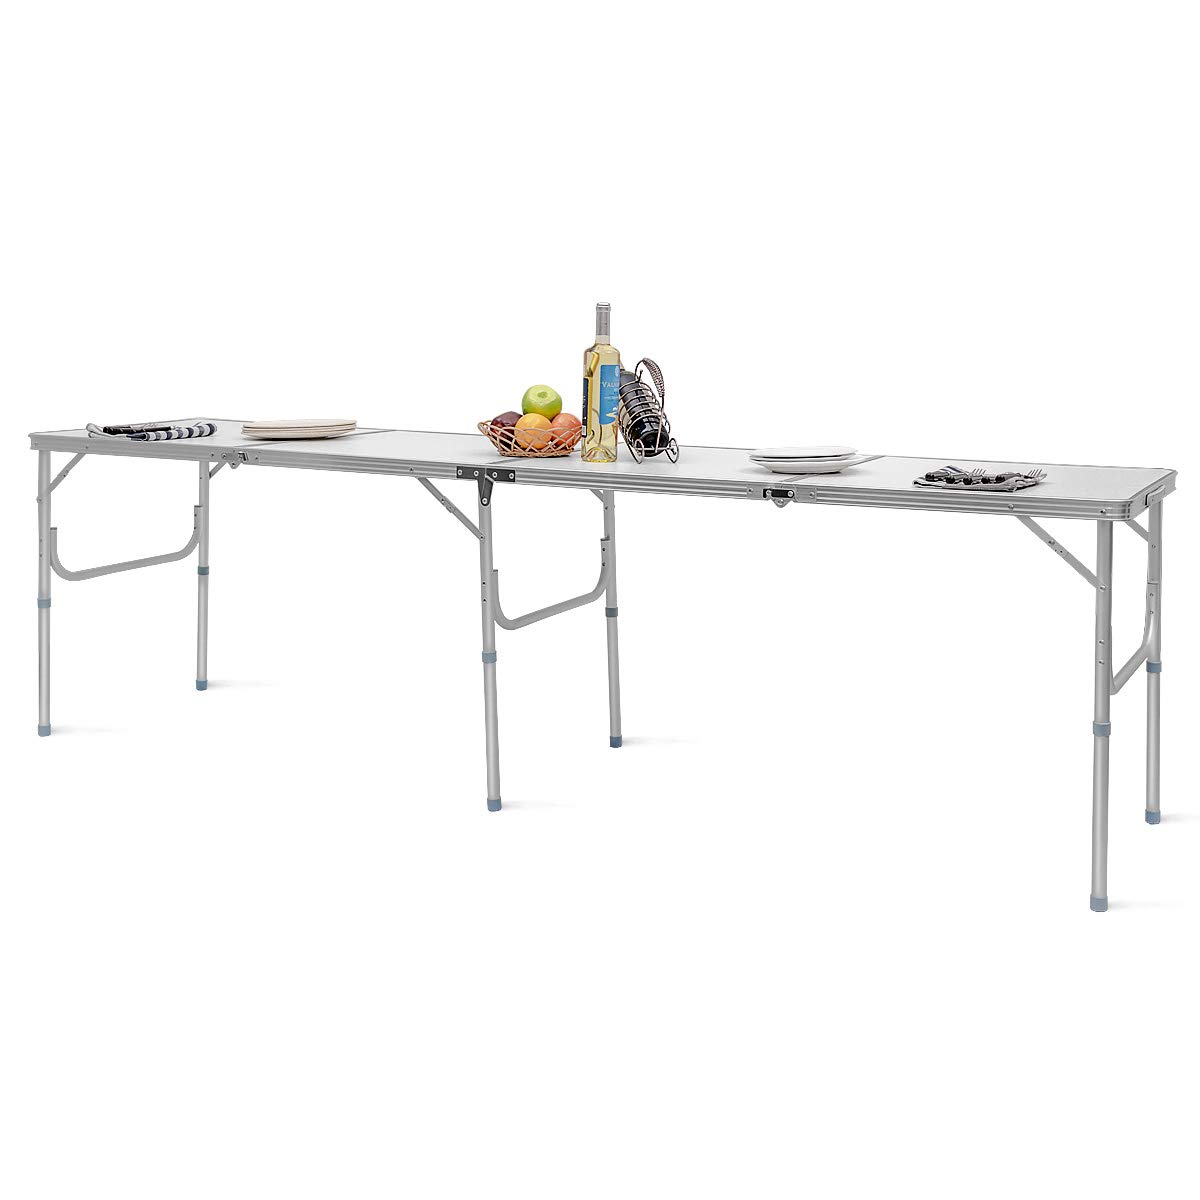 Giantex 8FT Folding Portable Aluminum Table with Carrying Handle, Waterproof Anti-Slip Foot Design, Easy Setup for Indoor, Outdoor, Picnic, Party Camping by Giantex